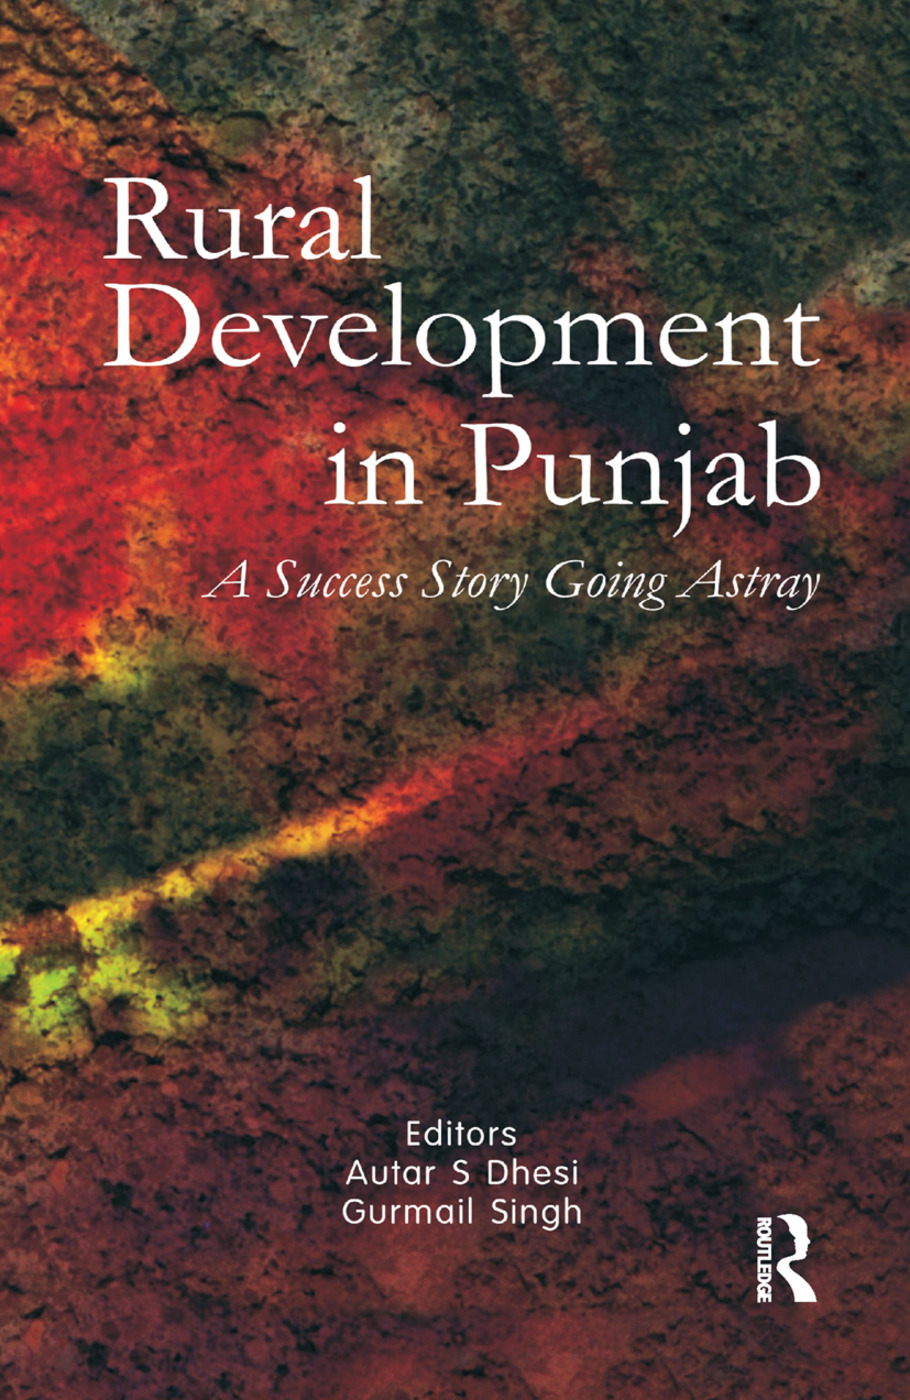 Rural Development in Punjab: A Success Story Going Astray book cover